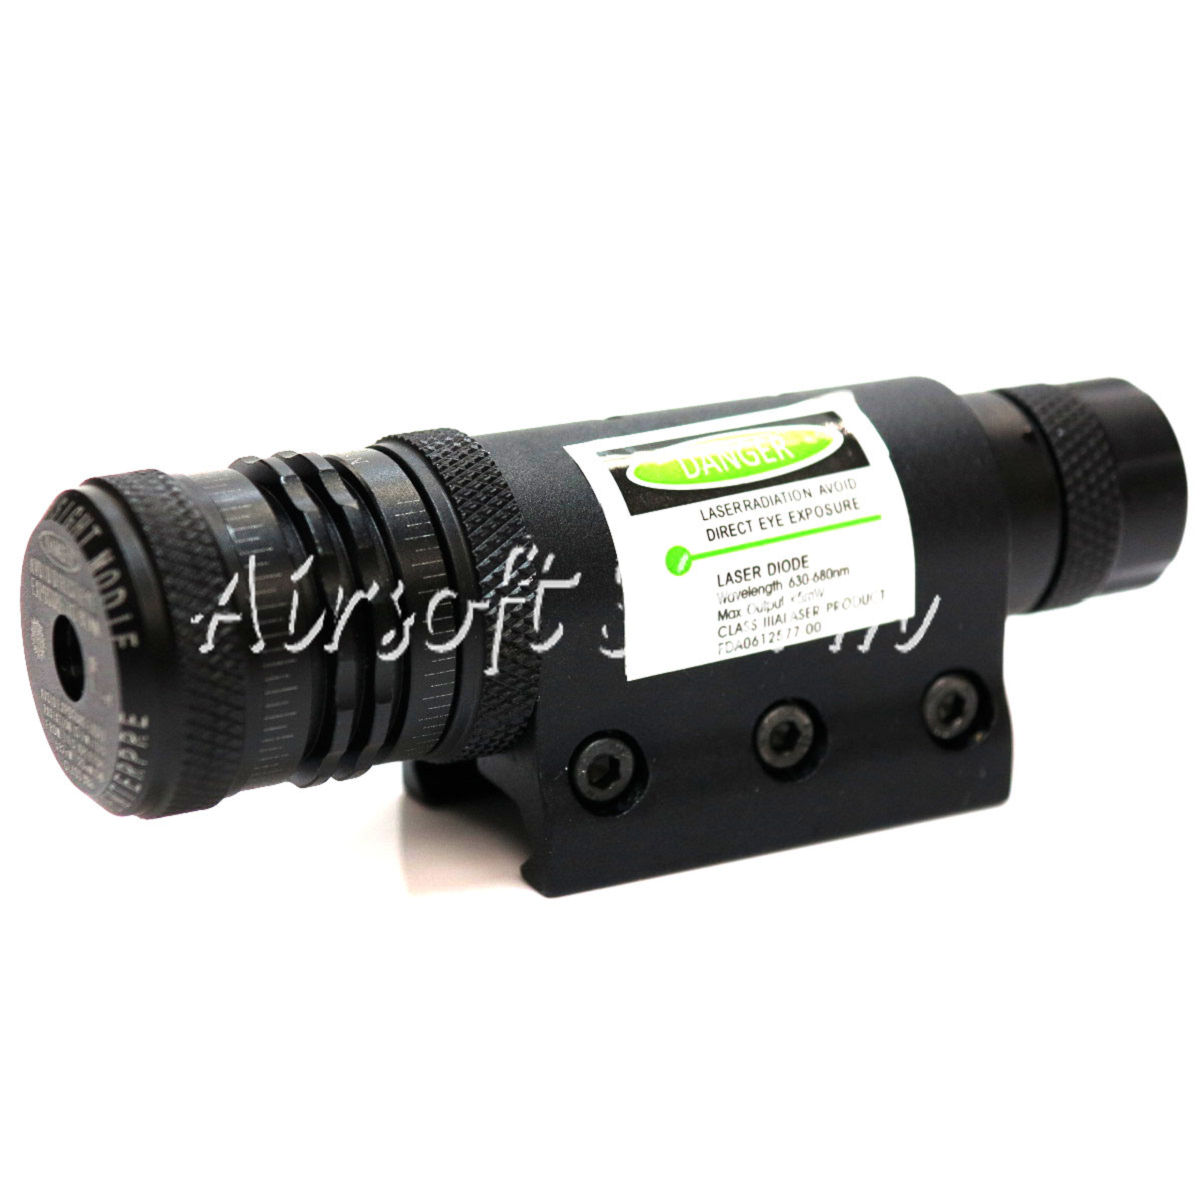 LXGD Tactical Gear Rifle Green Laser Sight Pointer with Barrel & RIS Mount JG-10